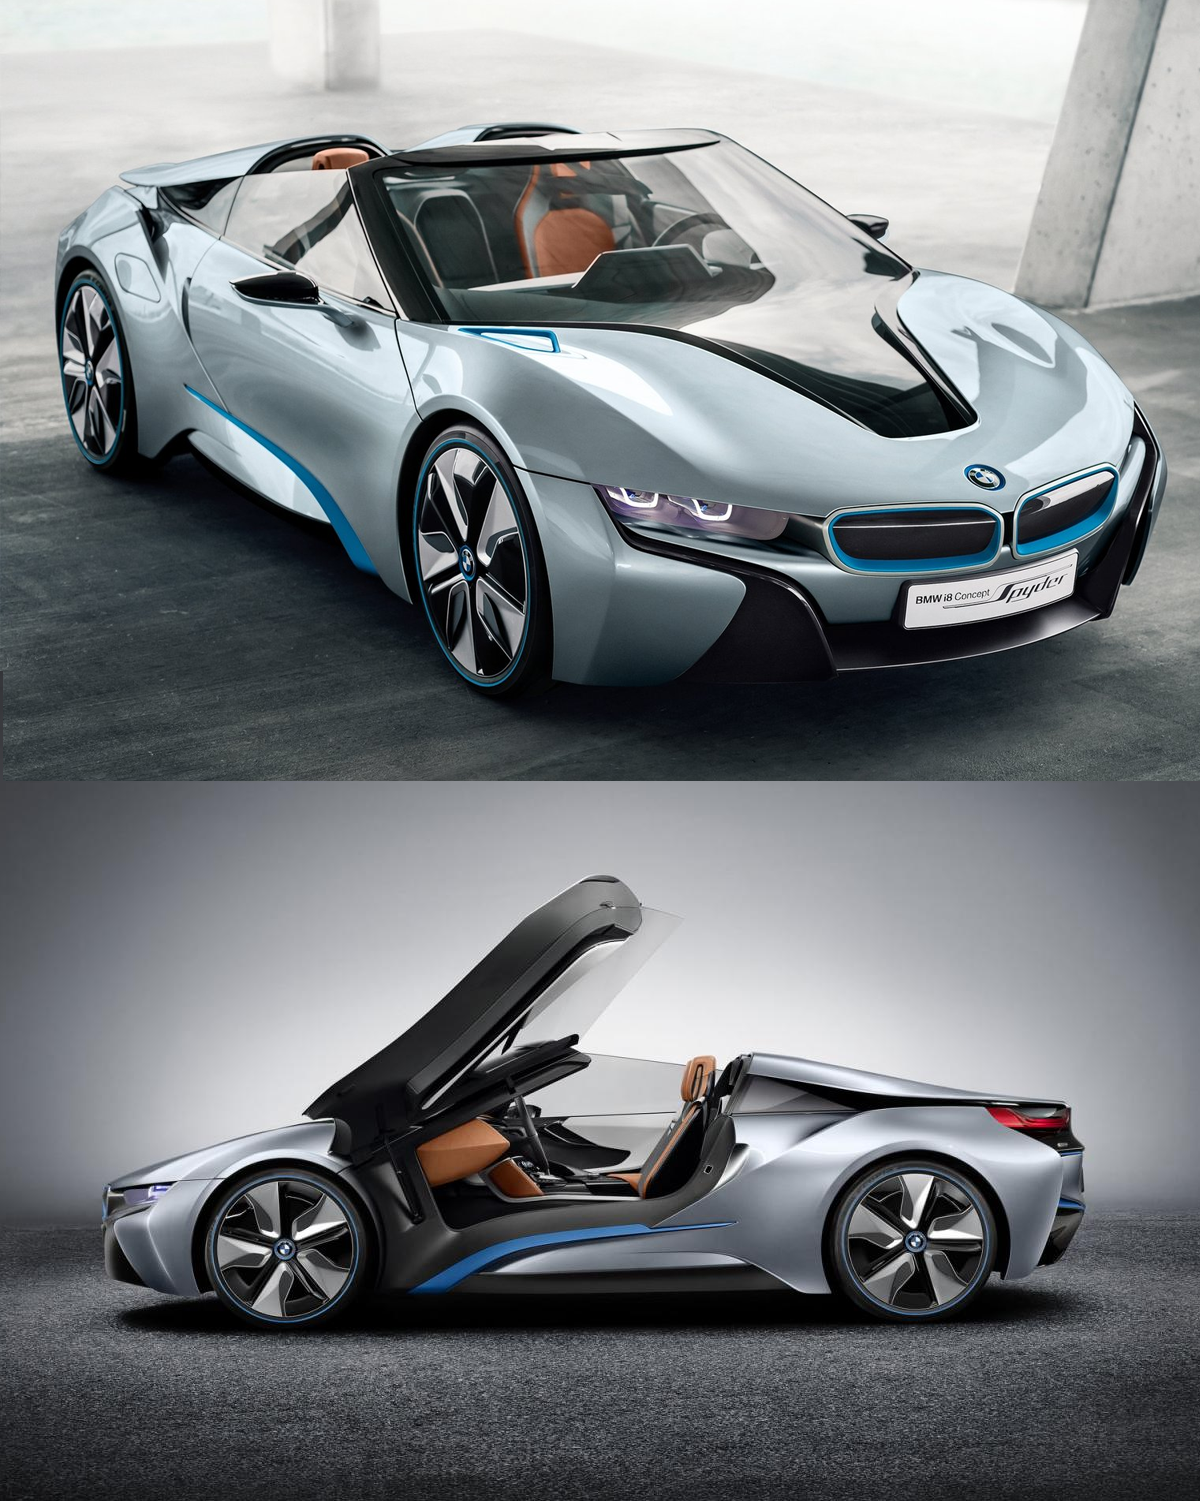 Bmw I8 Concept Spyder Takes To The Road Sounds Almost As Gorgeous